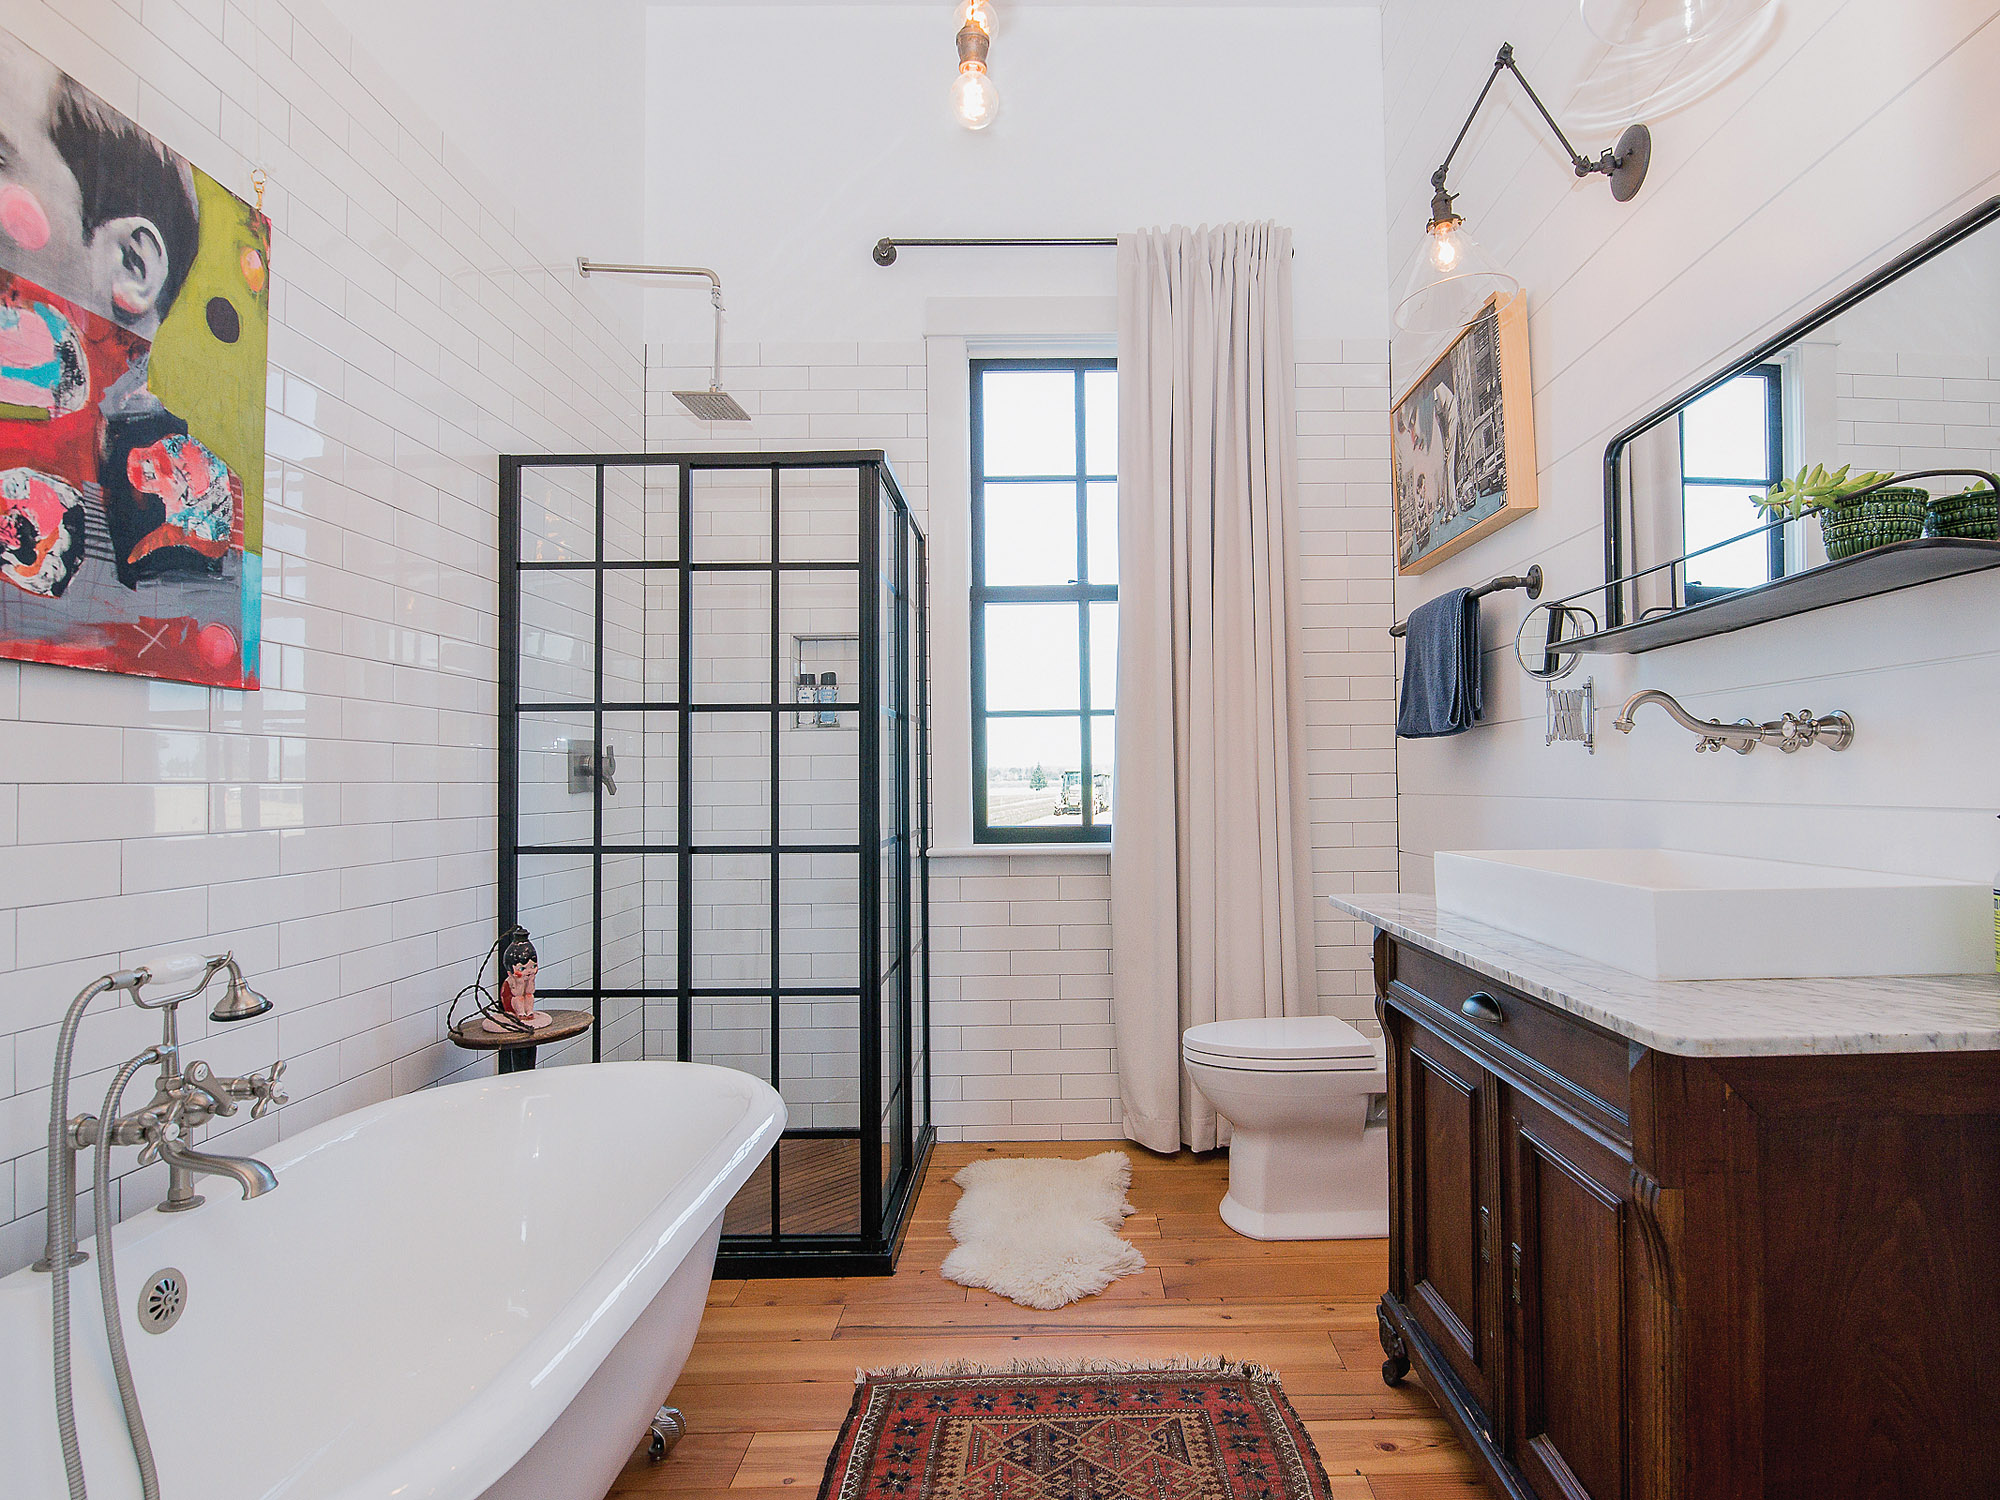 With a converted antique dresser and old-fashioned tub complementing industrial touches, the new bath is retro-chic.